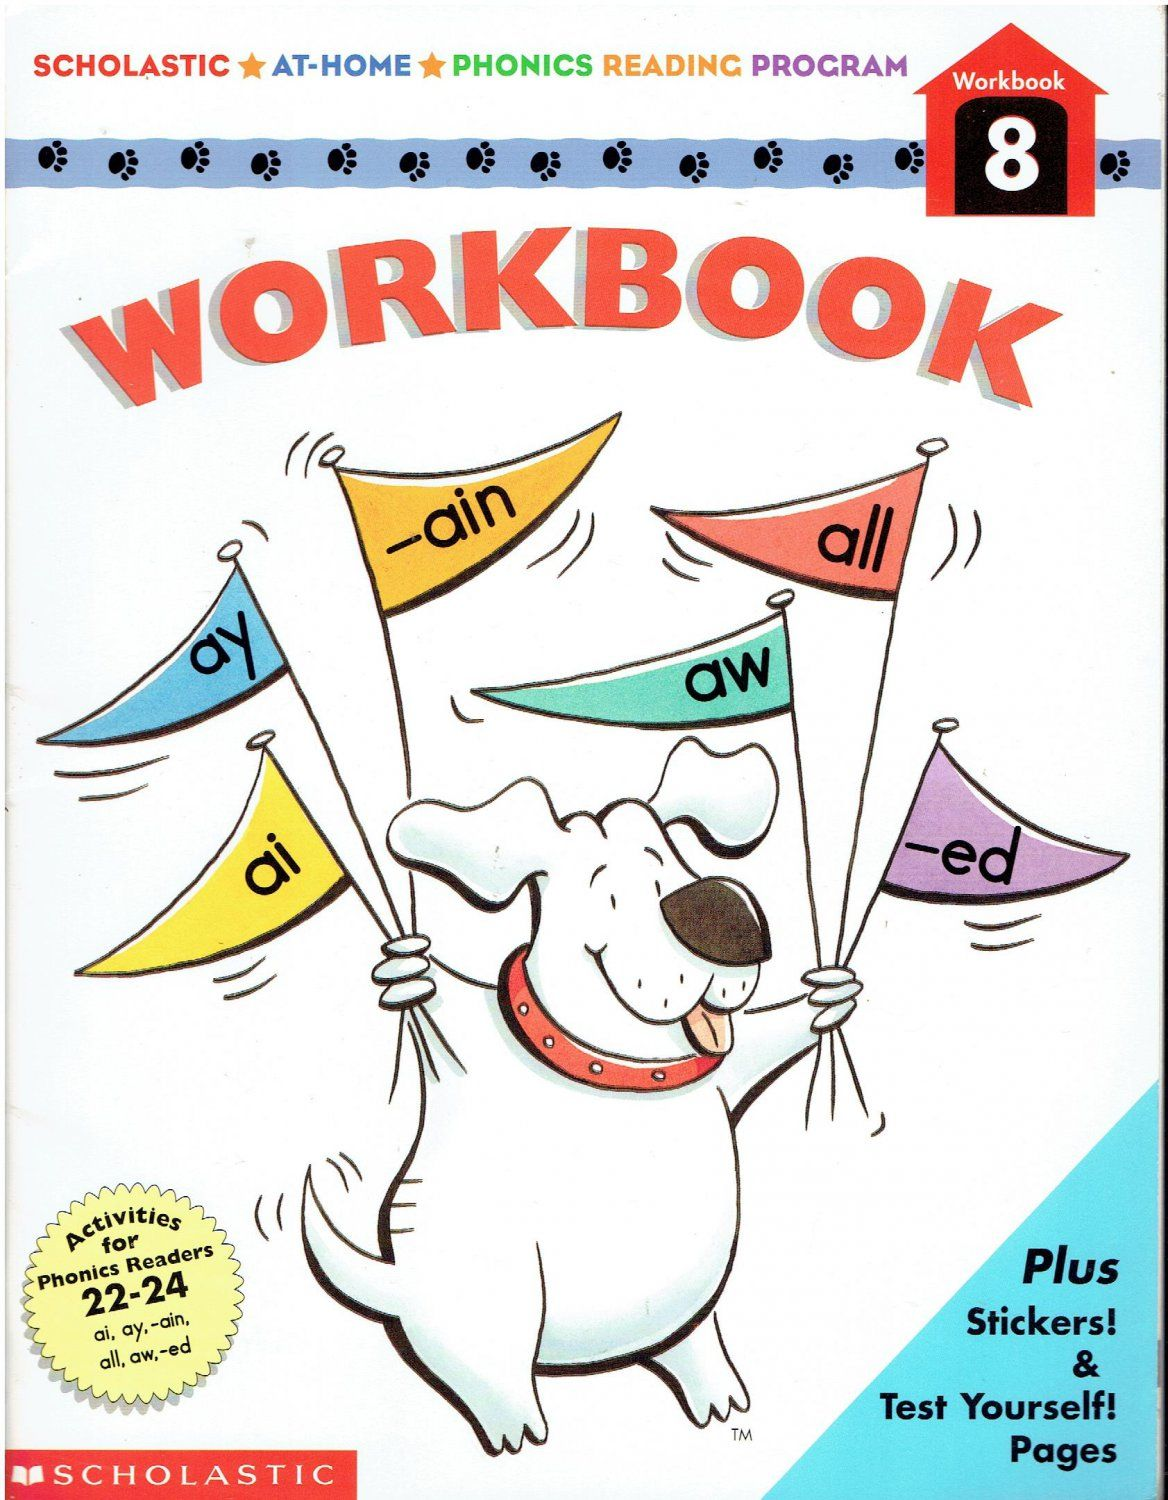 Scholastic At Home Phonics Reading Program Workbook 8 Isbn